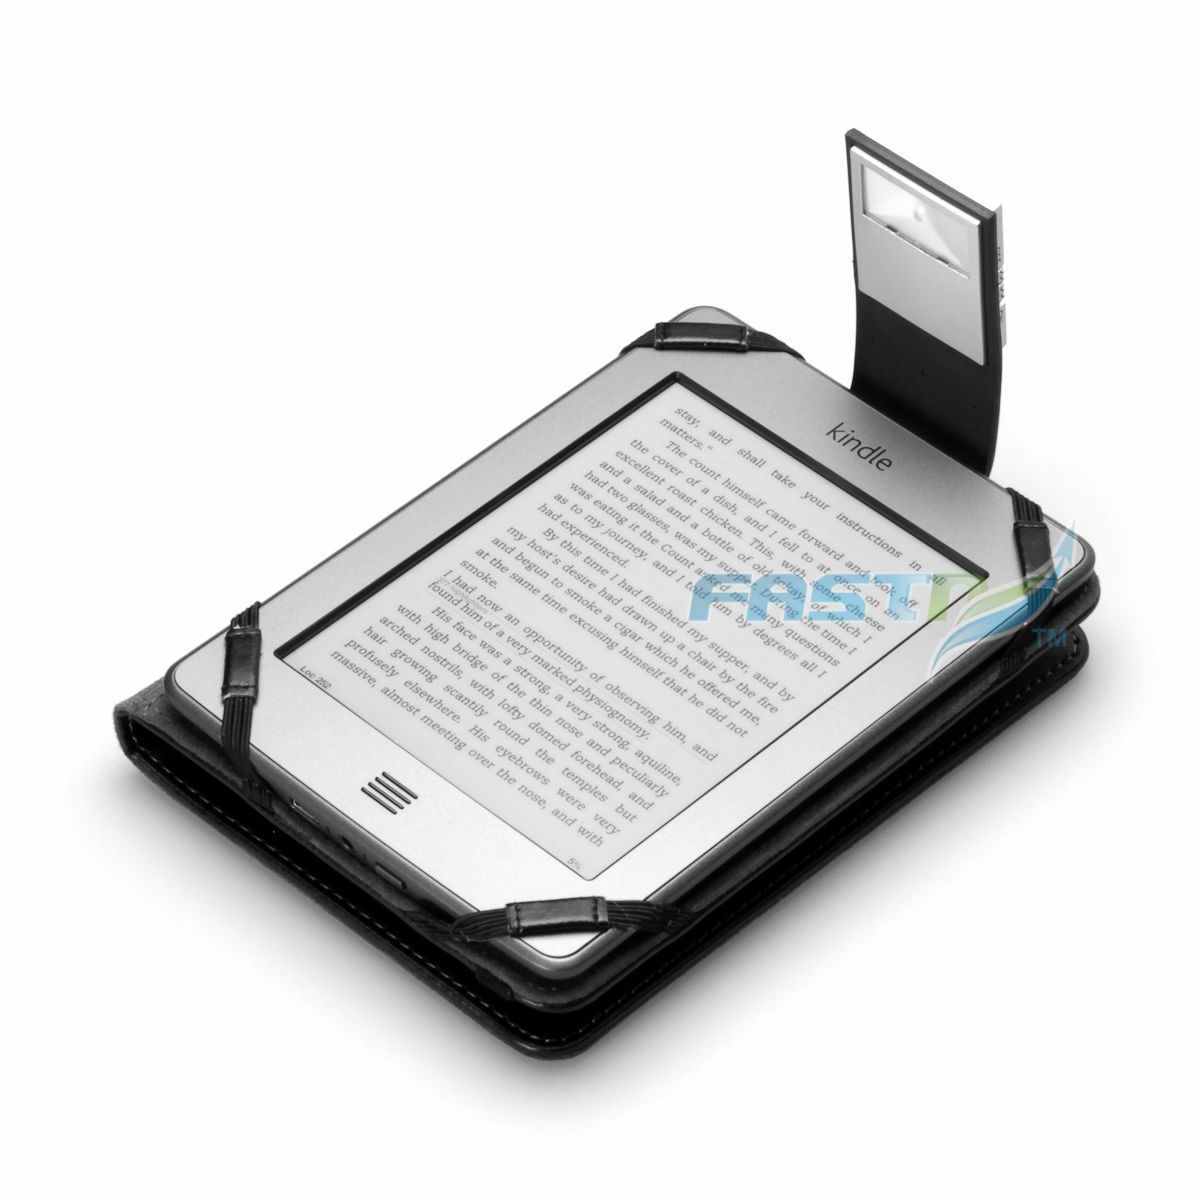 PREMIUM BLACK PU LEATHER KINDLE TOUCH / 4 WiFi CASE COVER WALLET WITH LED LIGHT | eBay